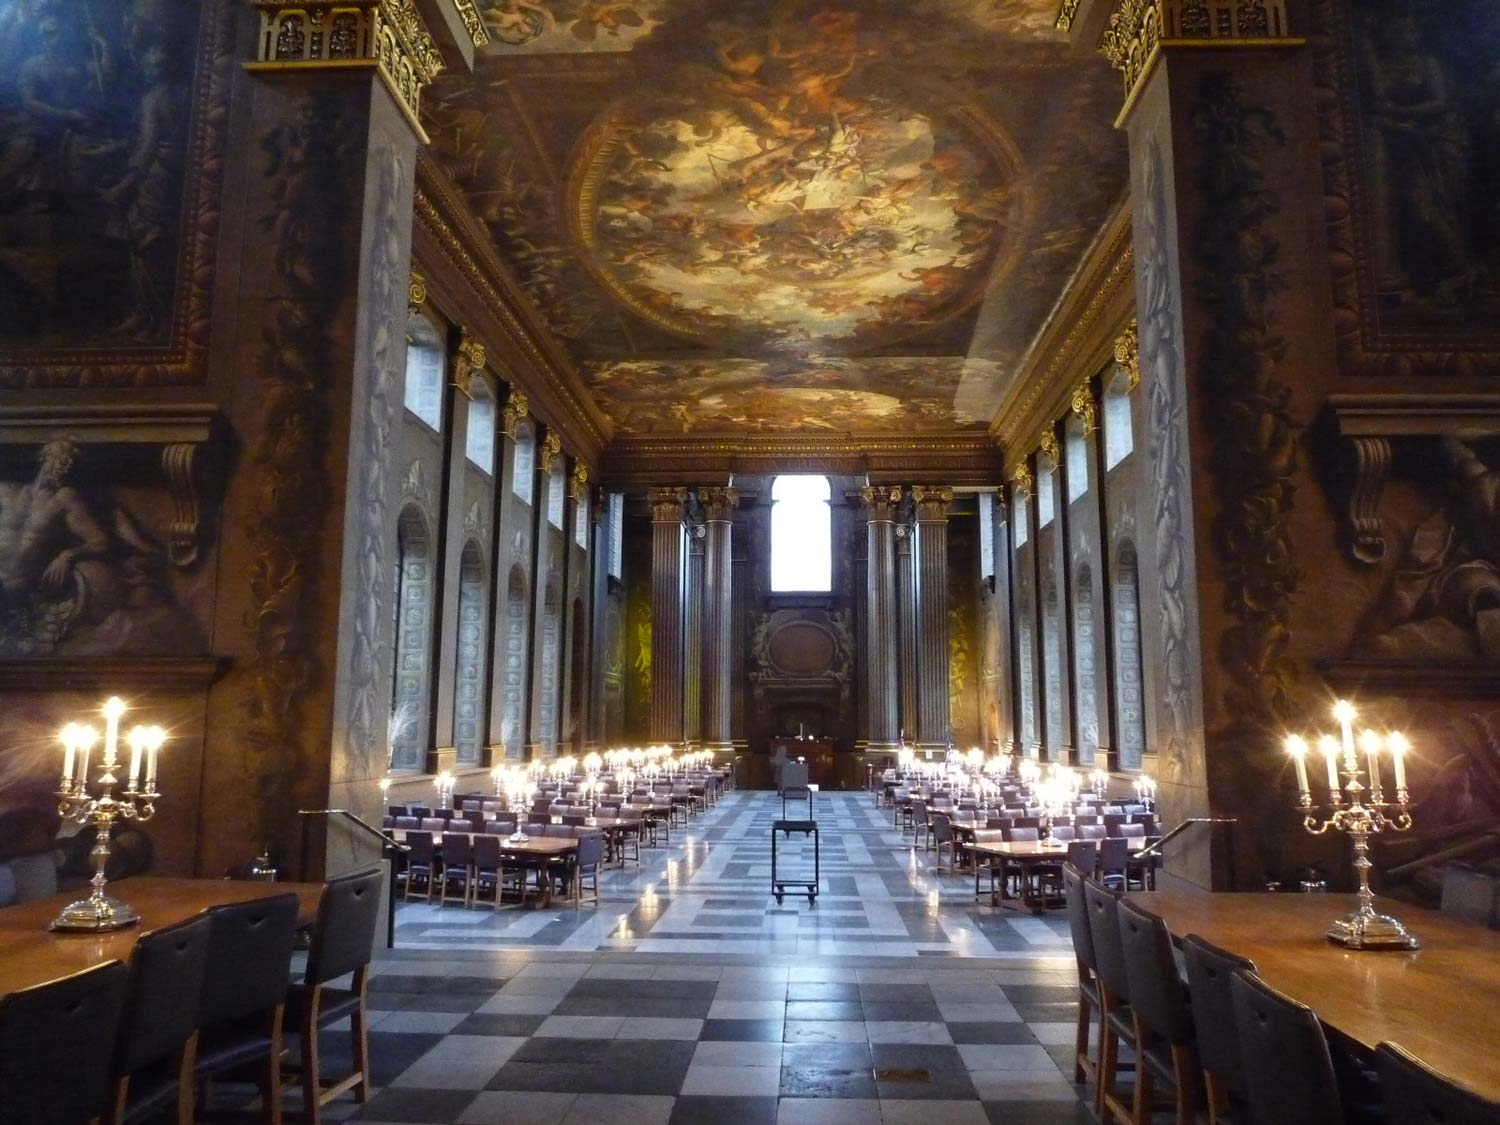 The Painted Hall interior – image courtesy of CareBear in Crazyland